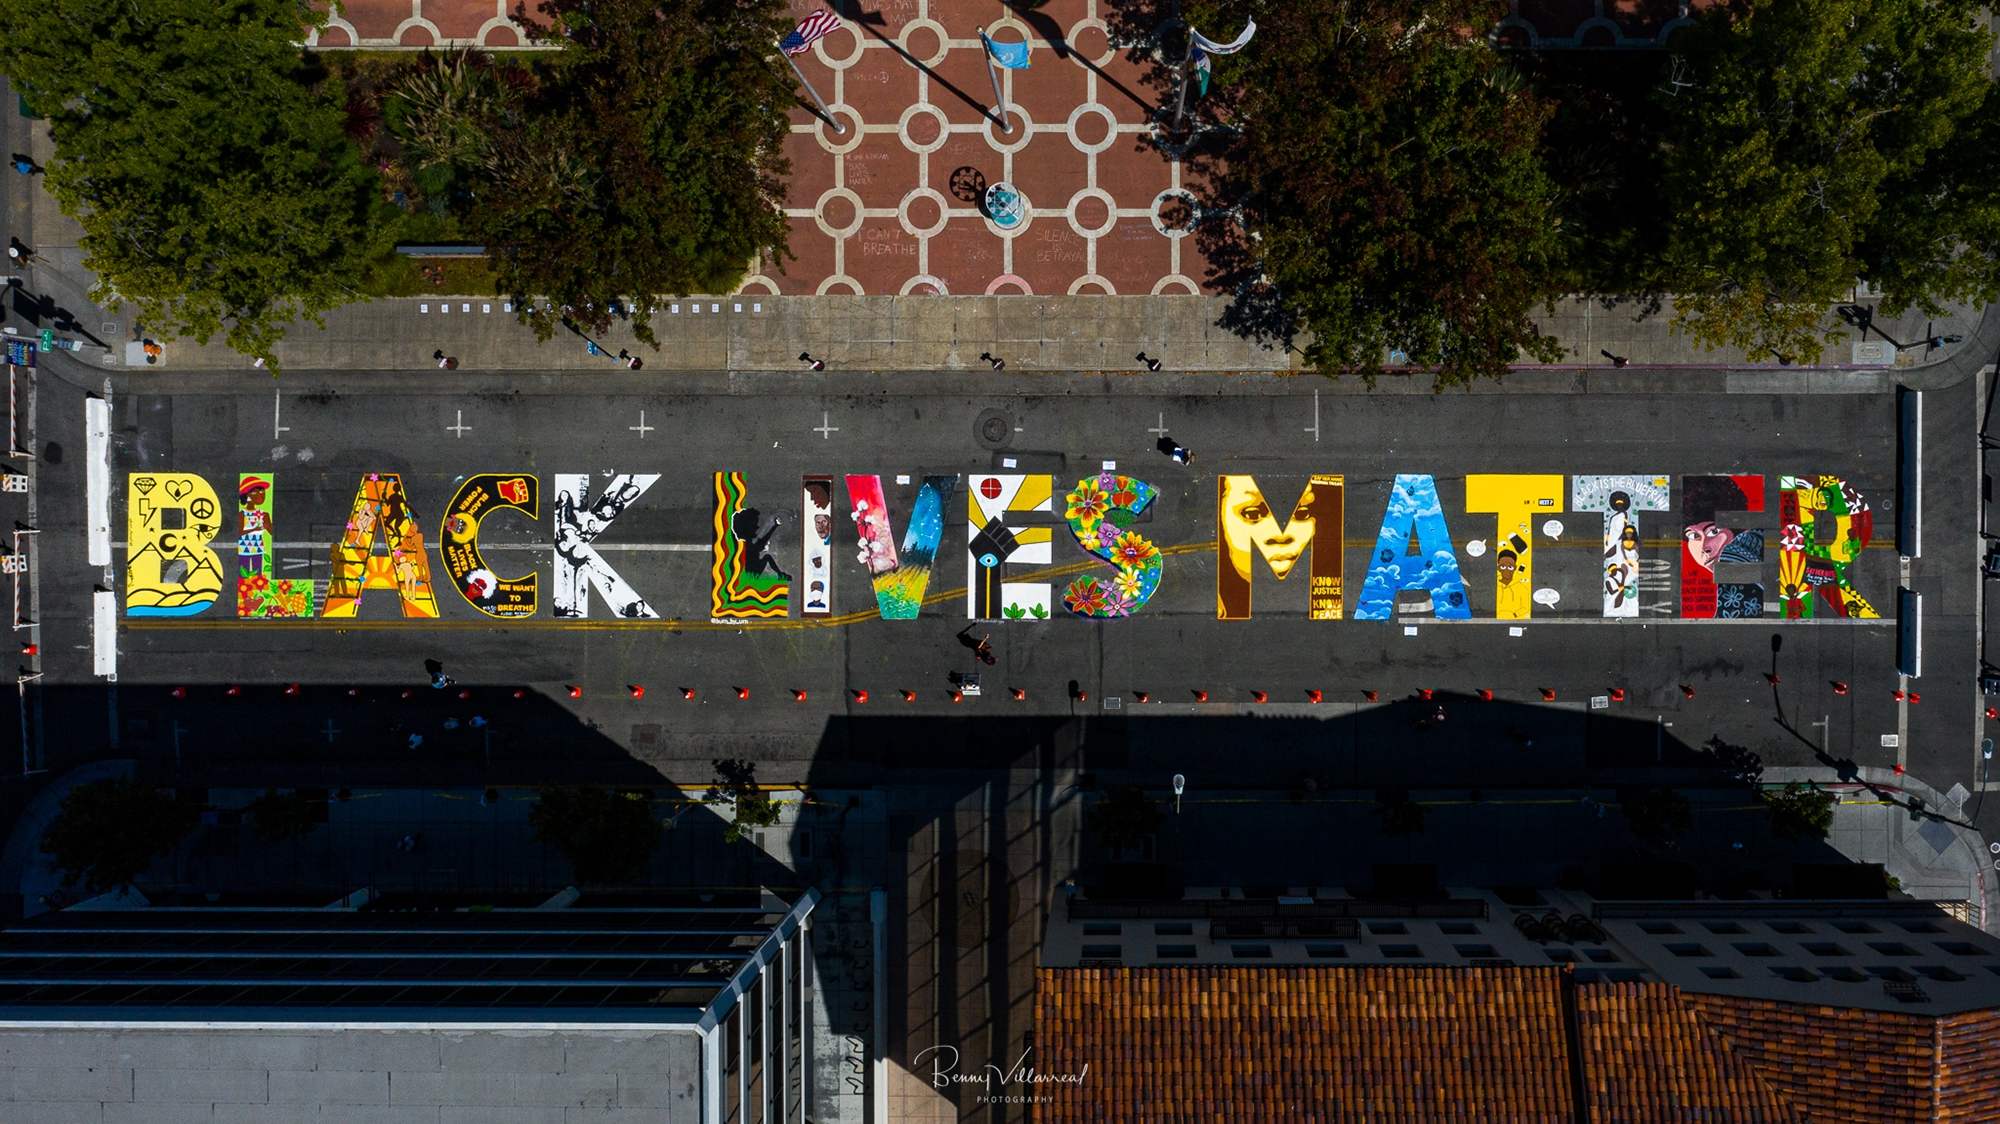 One Message Told 16 Ways Artists Behind Black Lives Matter Mural In Palo Alto Ask What More Will Be Done Beyond Street Art News Palo Alto Online